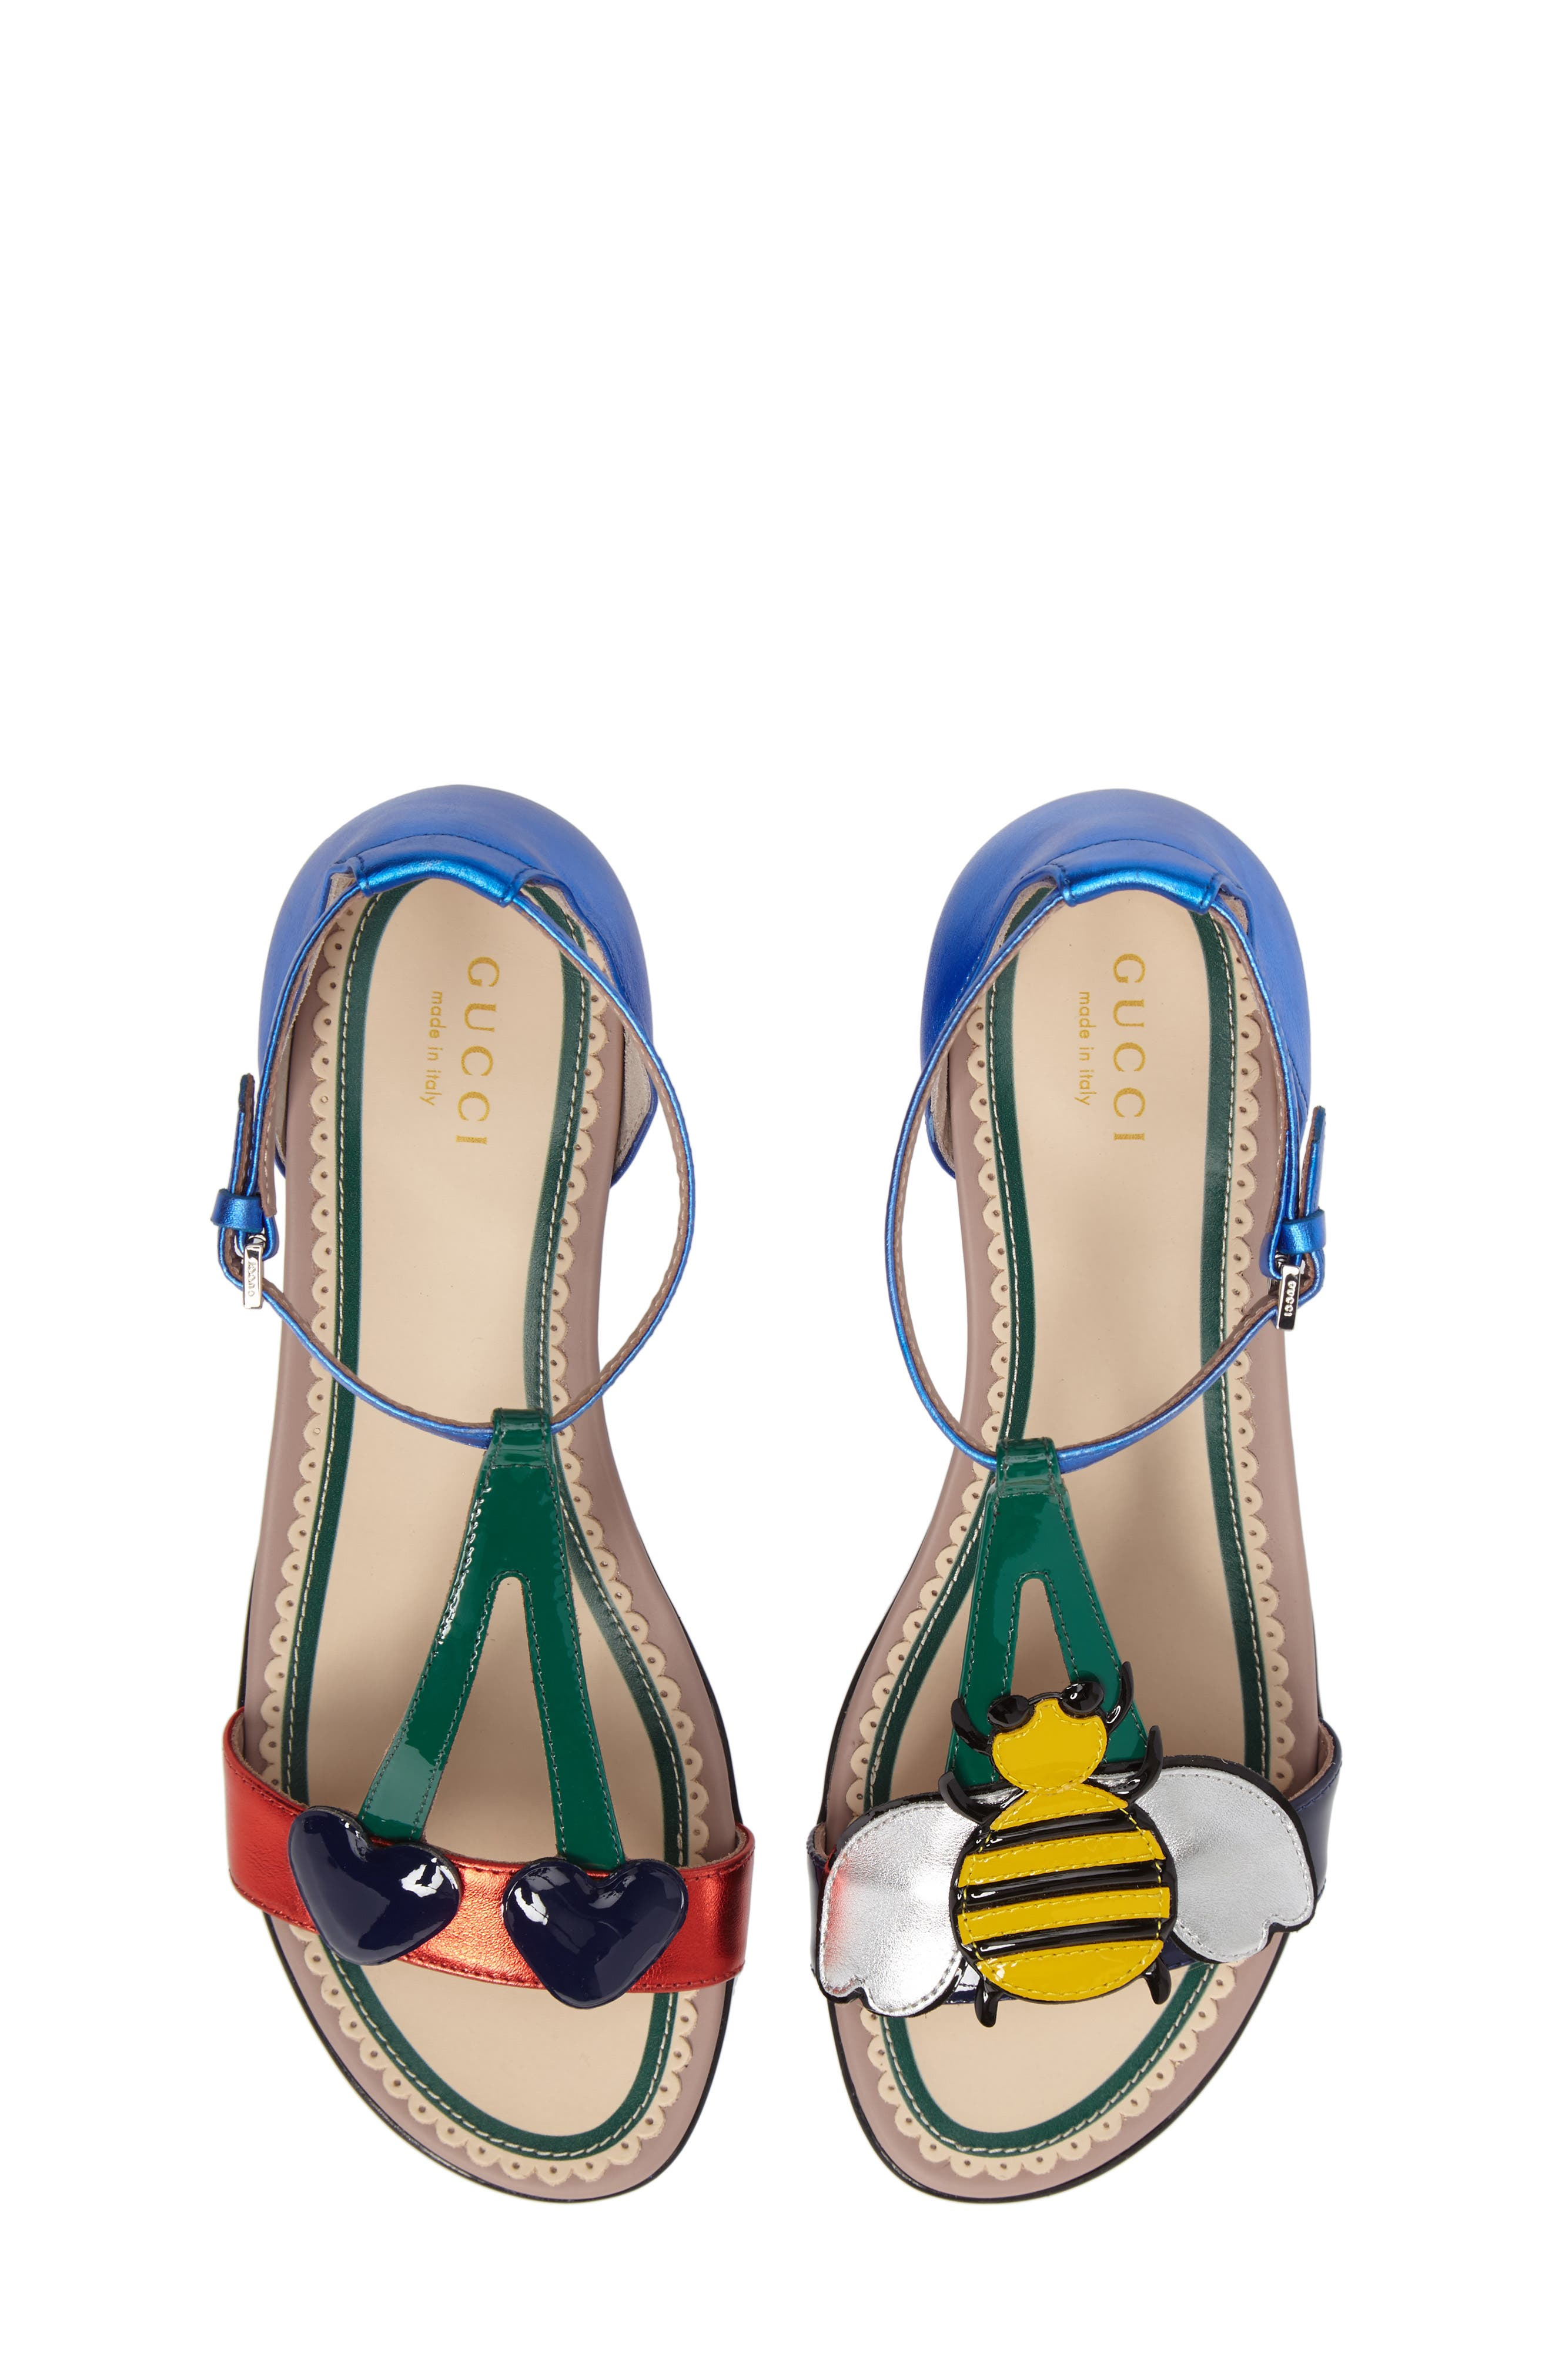 Bee & Cherry Sandal,                             Alternate thumbnail 5, color,                             400